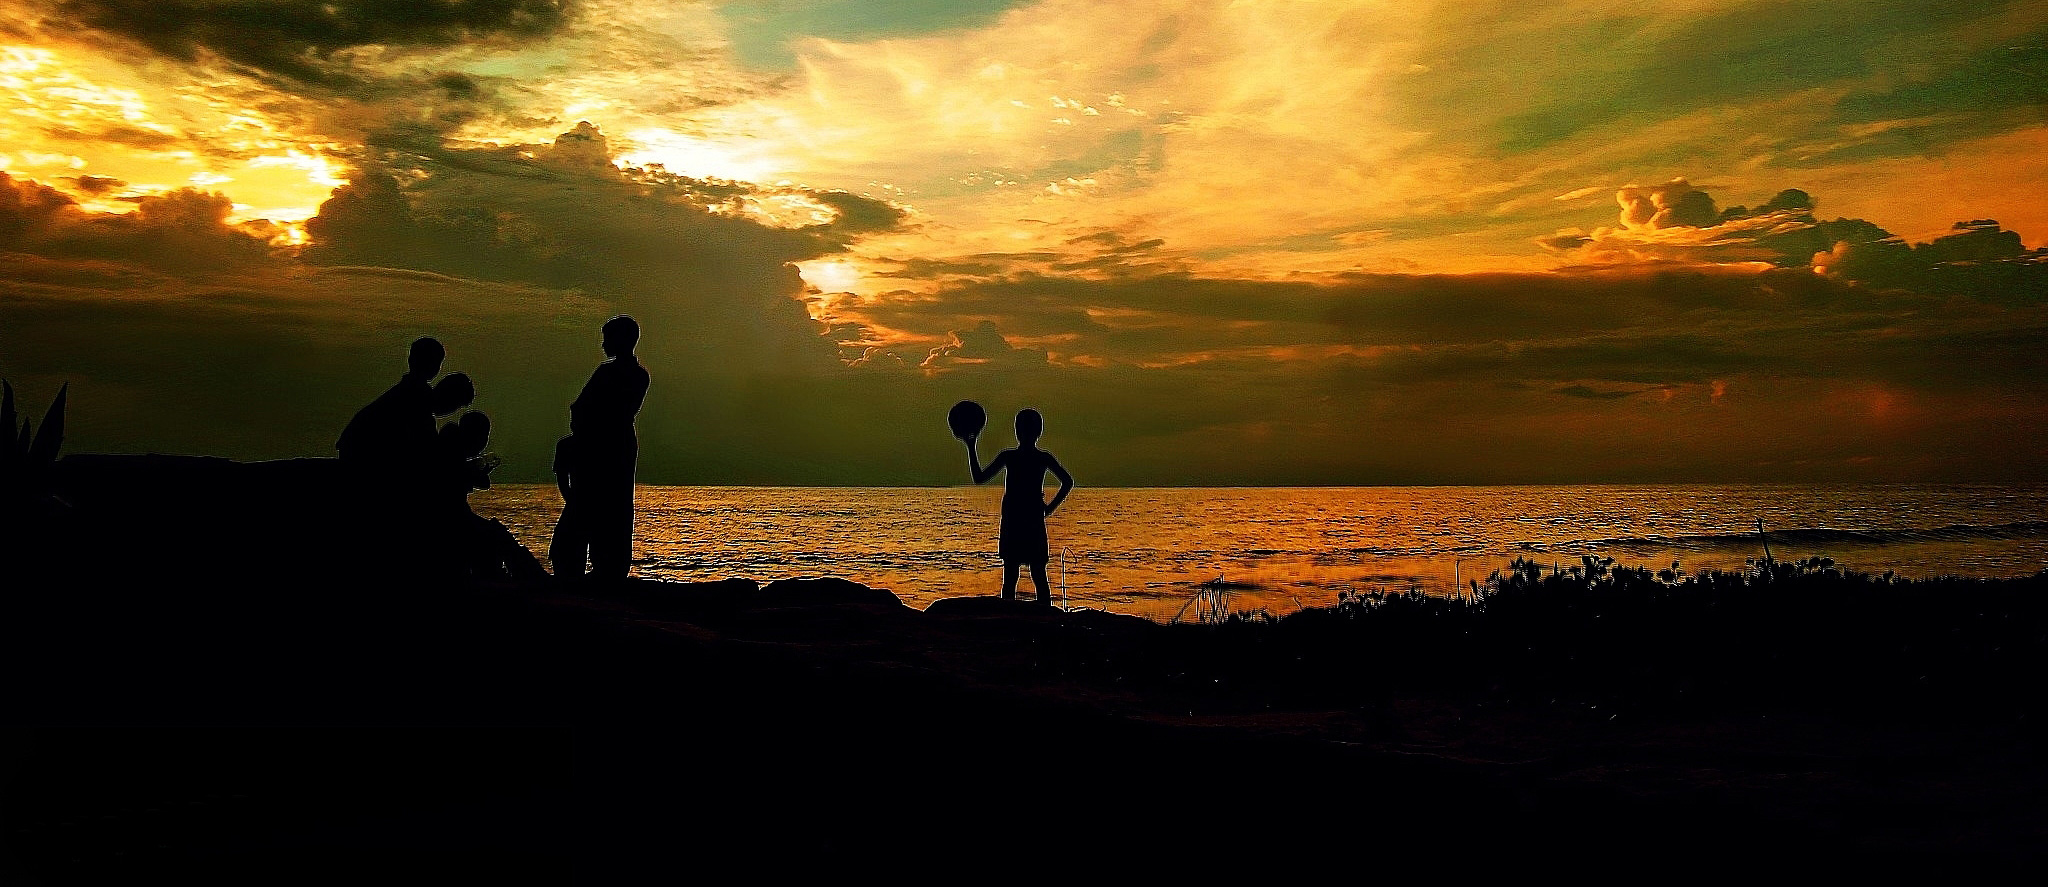 Silhouettes of people playing football at sunset